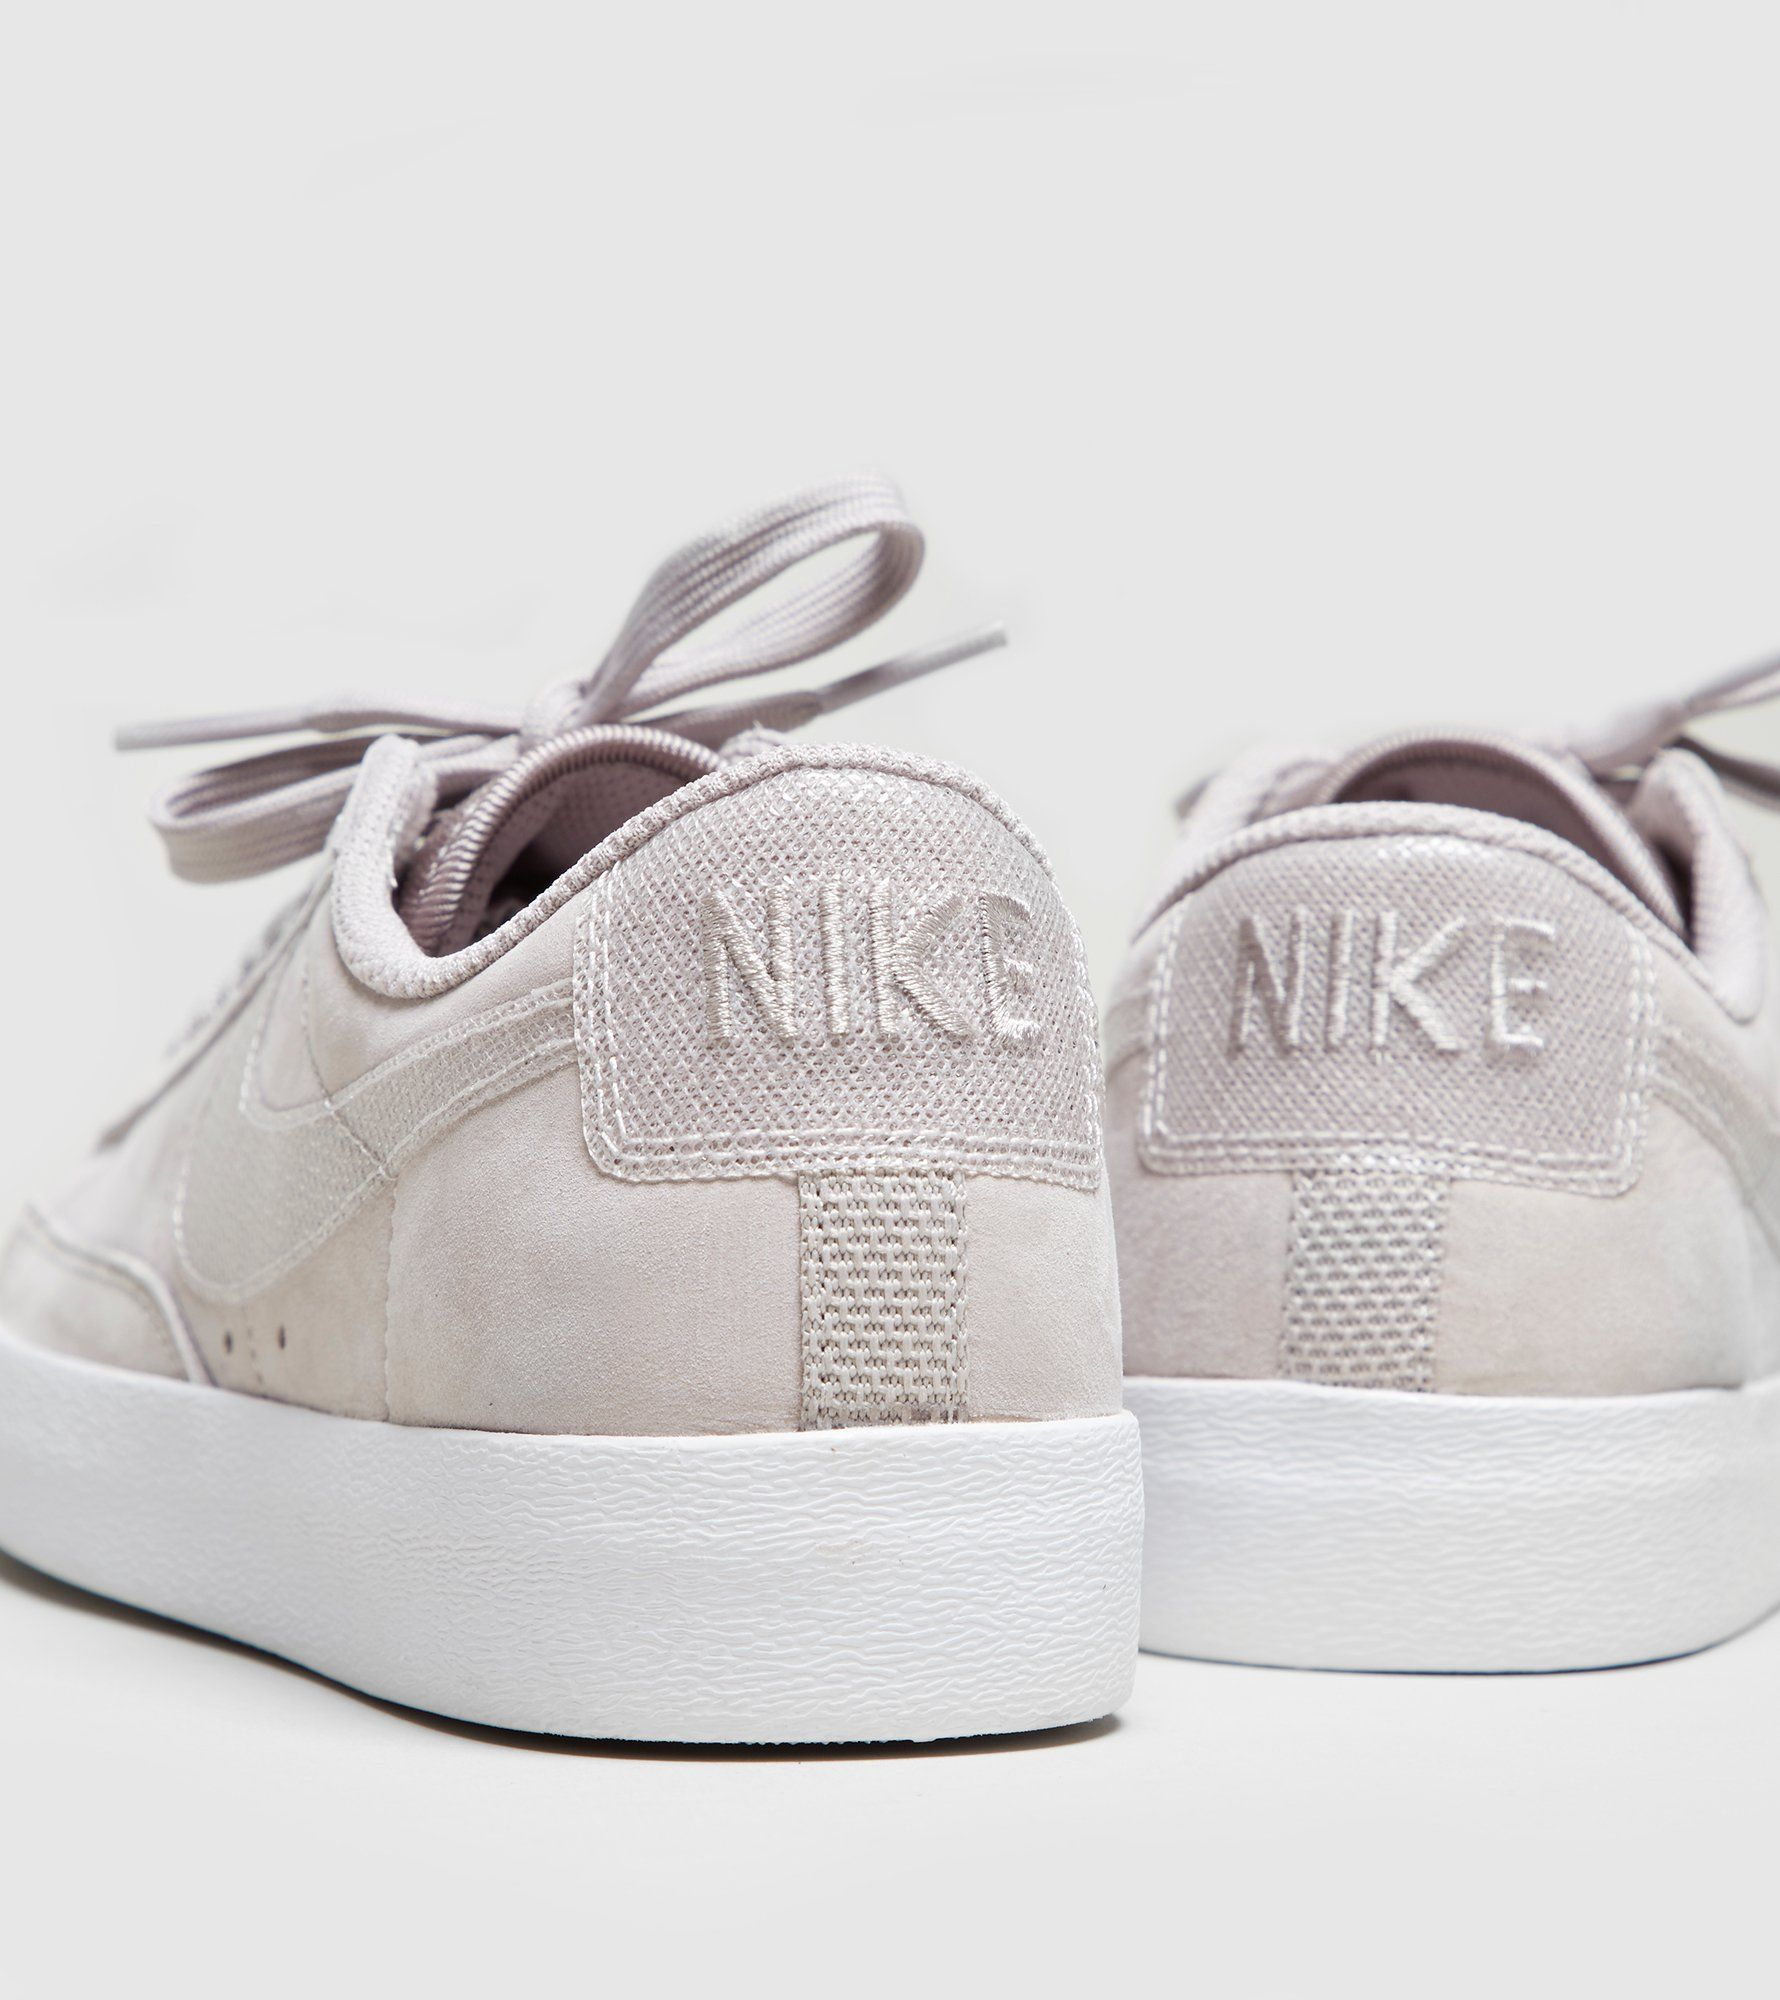 Nike Blazer Low LX Women's